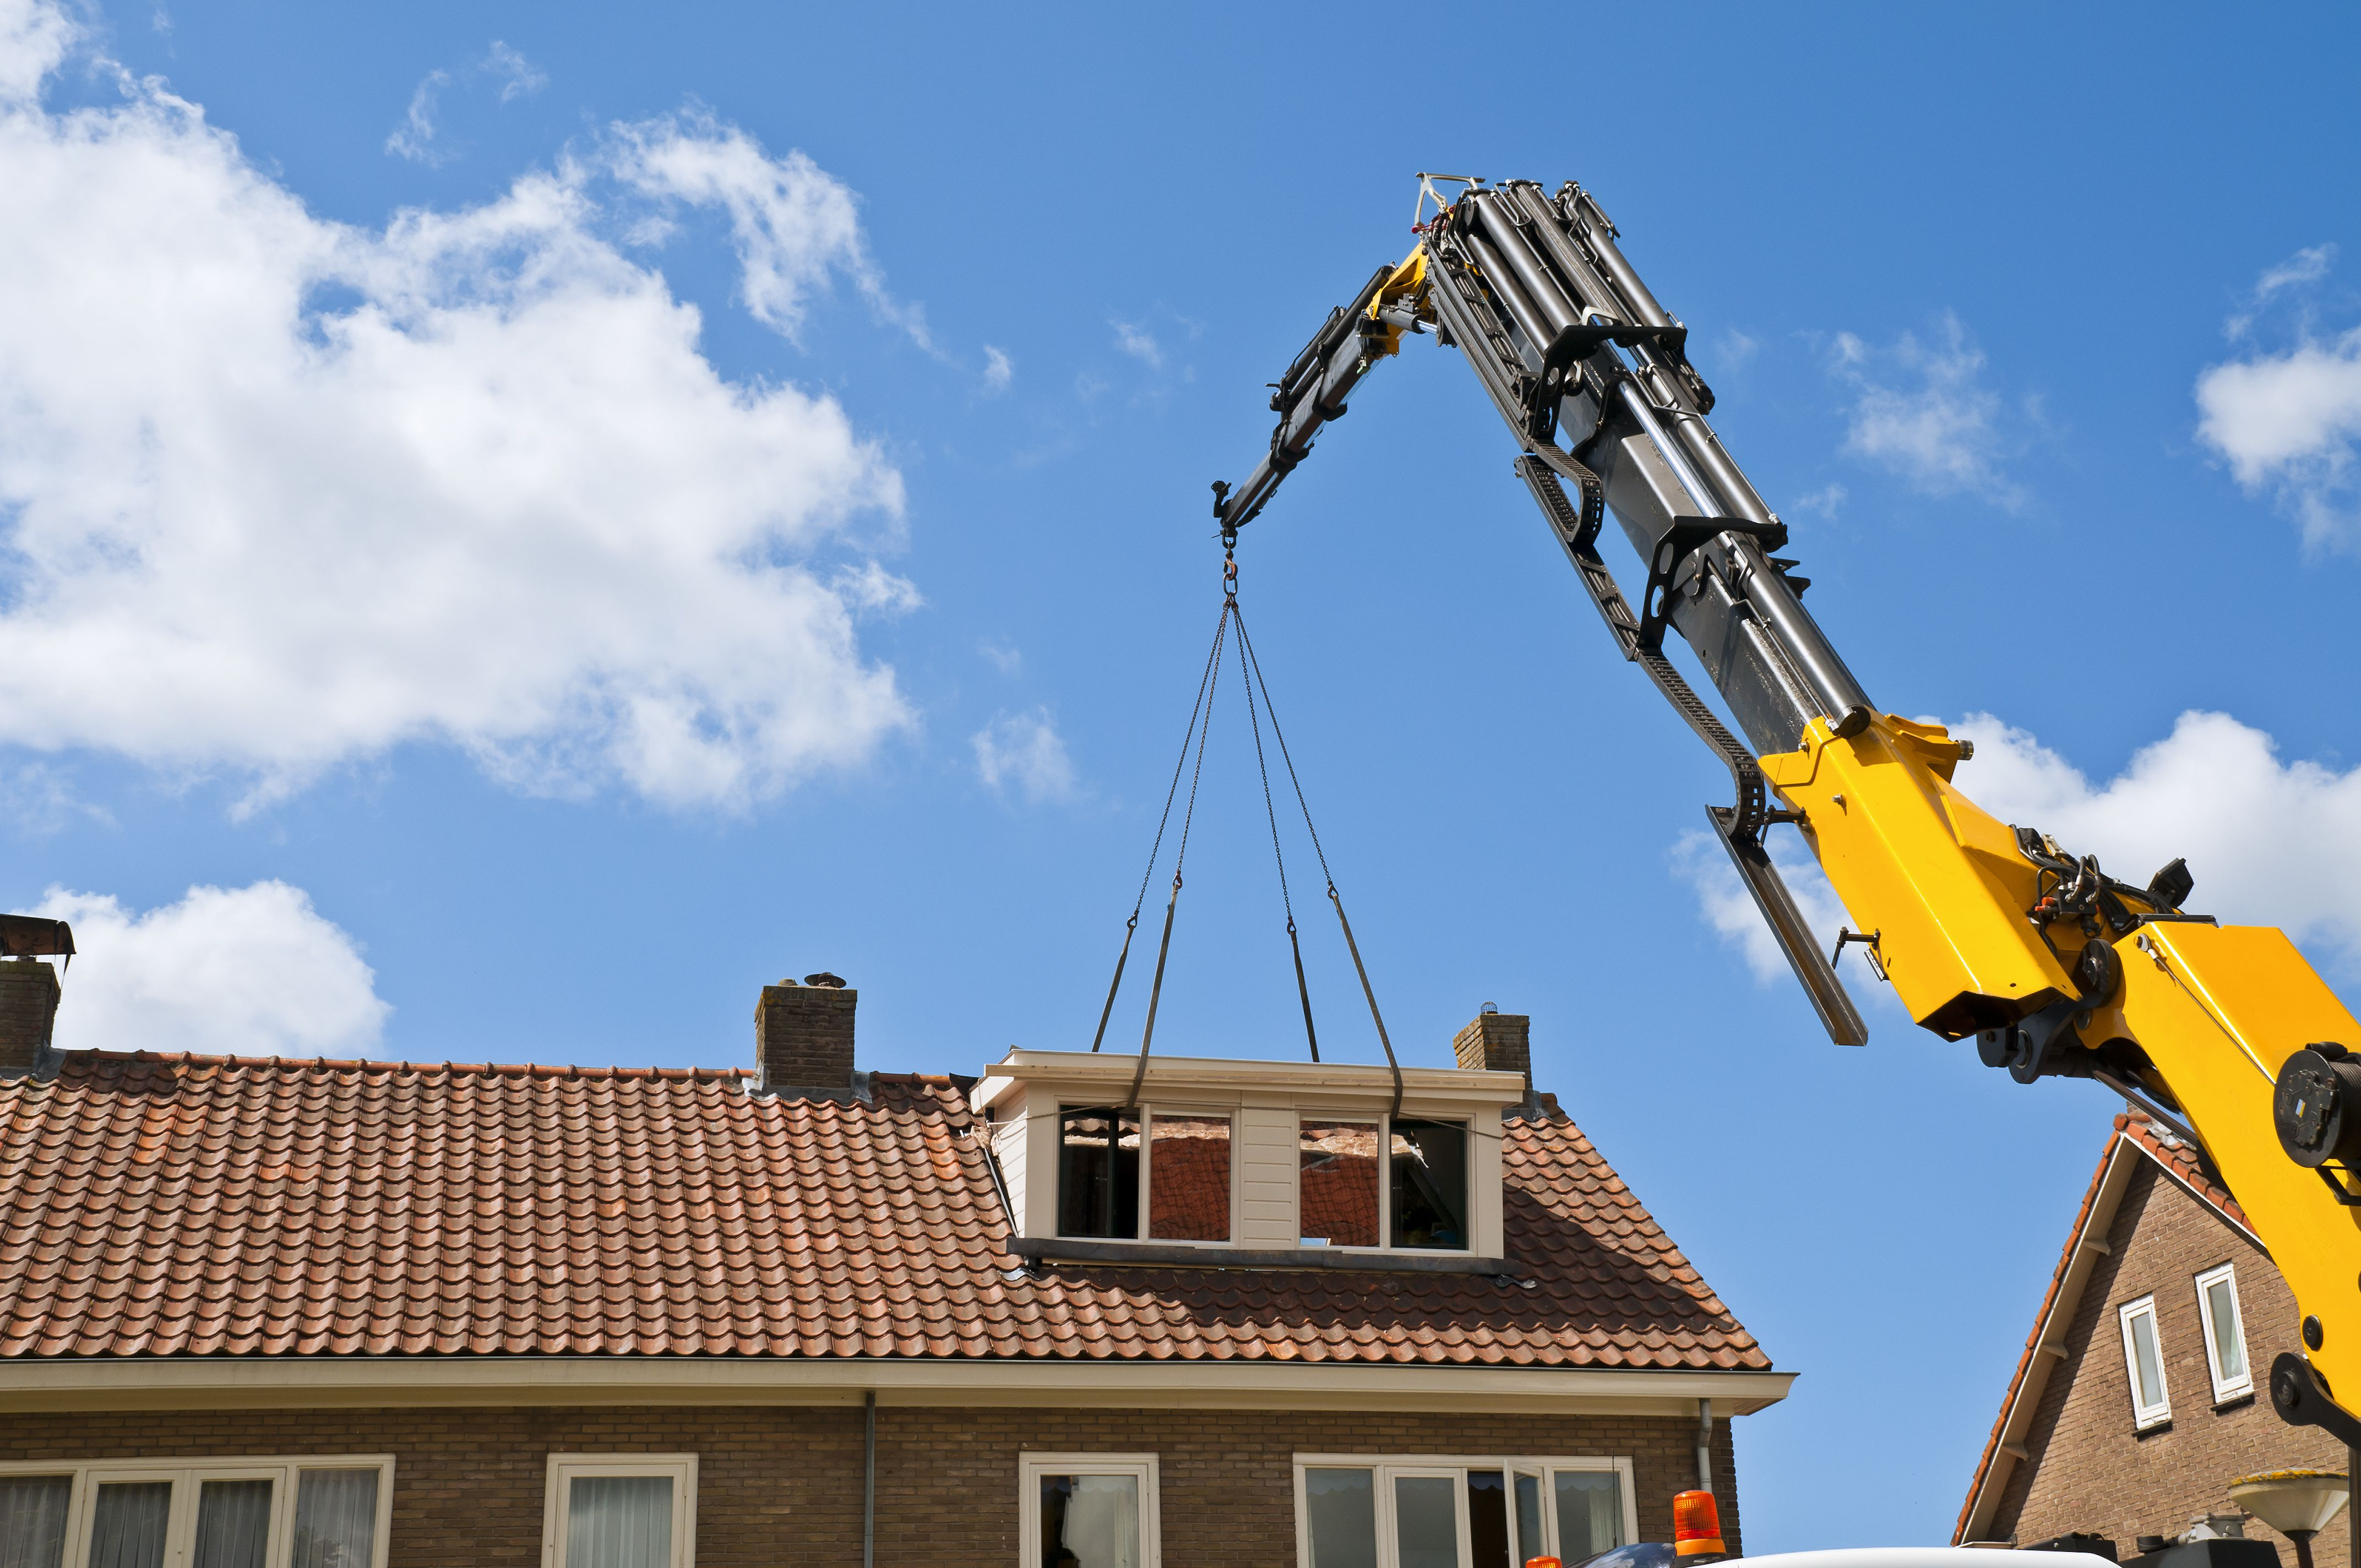 A prefab dormer is installed with a crane